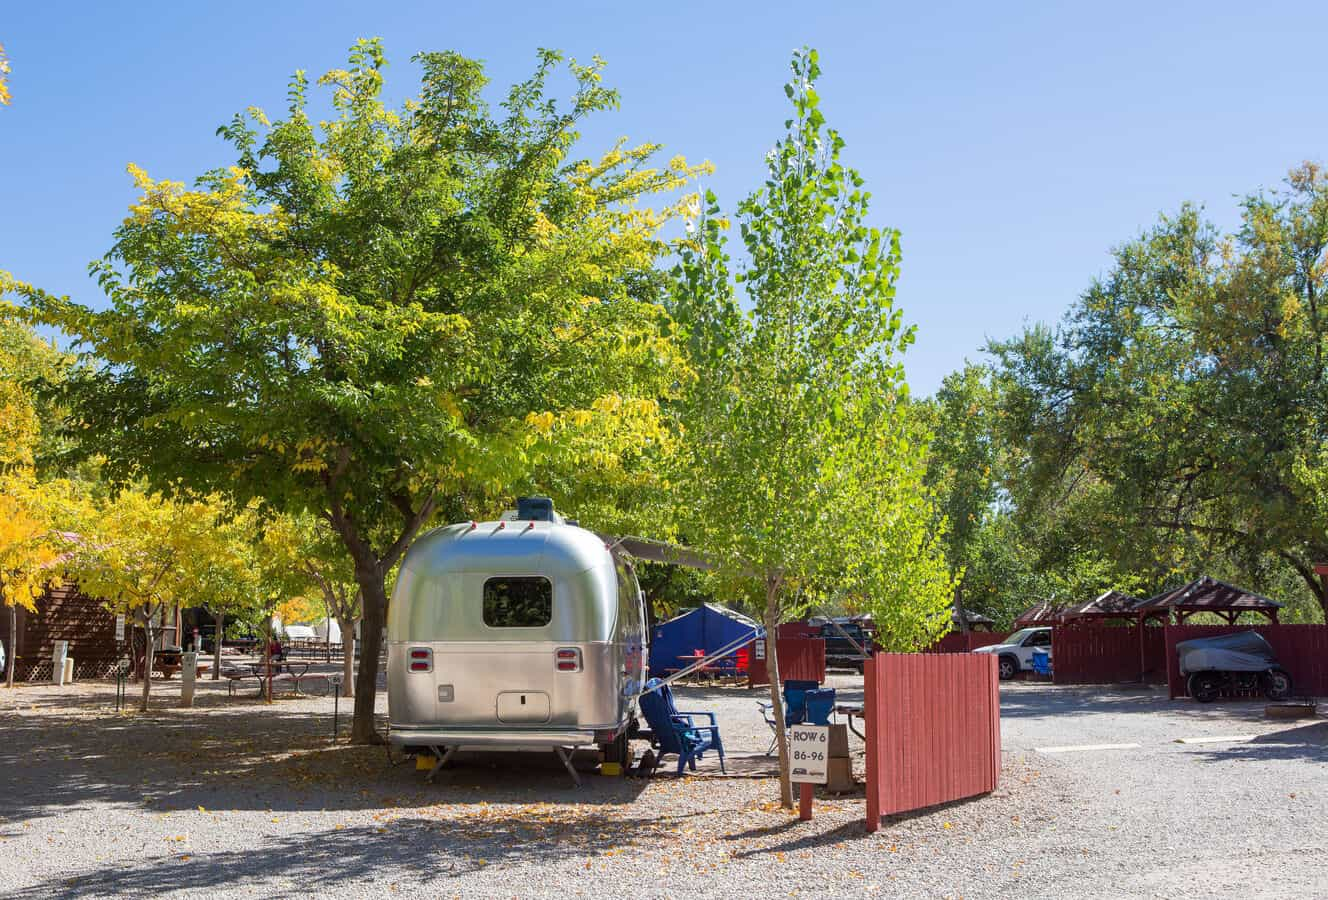 Are Airstream Trailers Worth the High Cost? - Camper Report